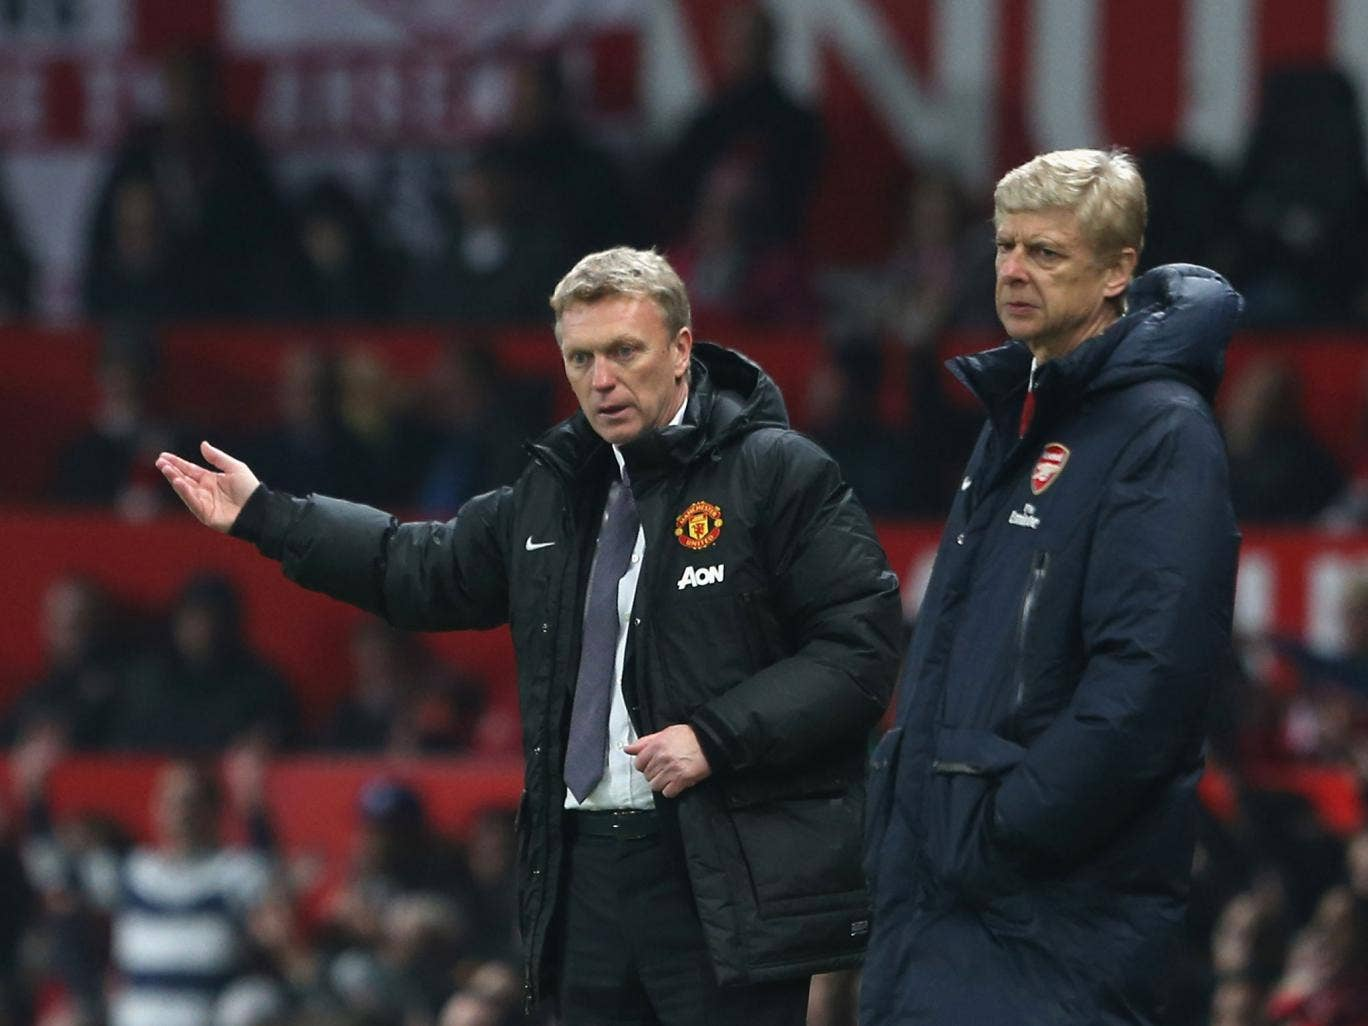 Both David Moyes and Arsene Wenger can't afford to lose their Premier League confrontation at the Emirates on Wednesday